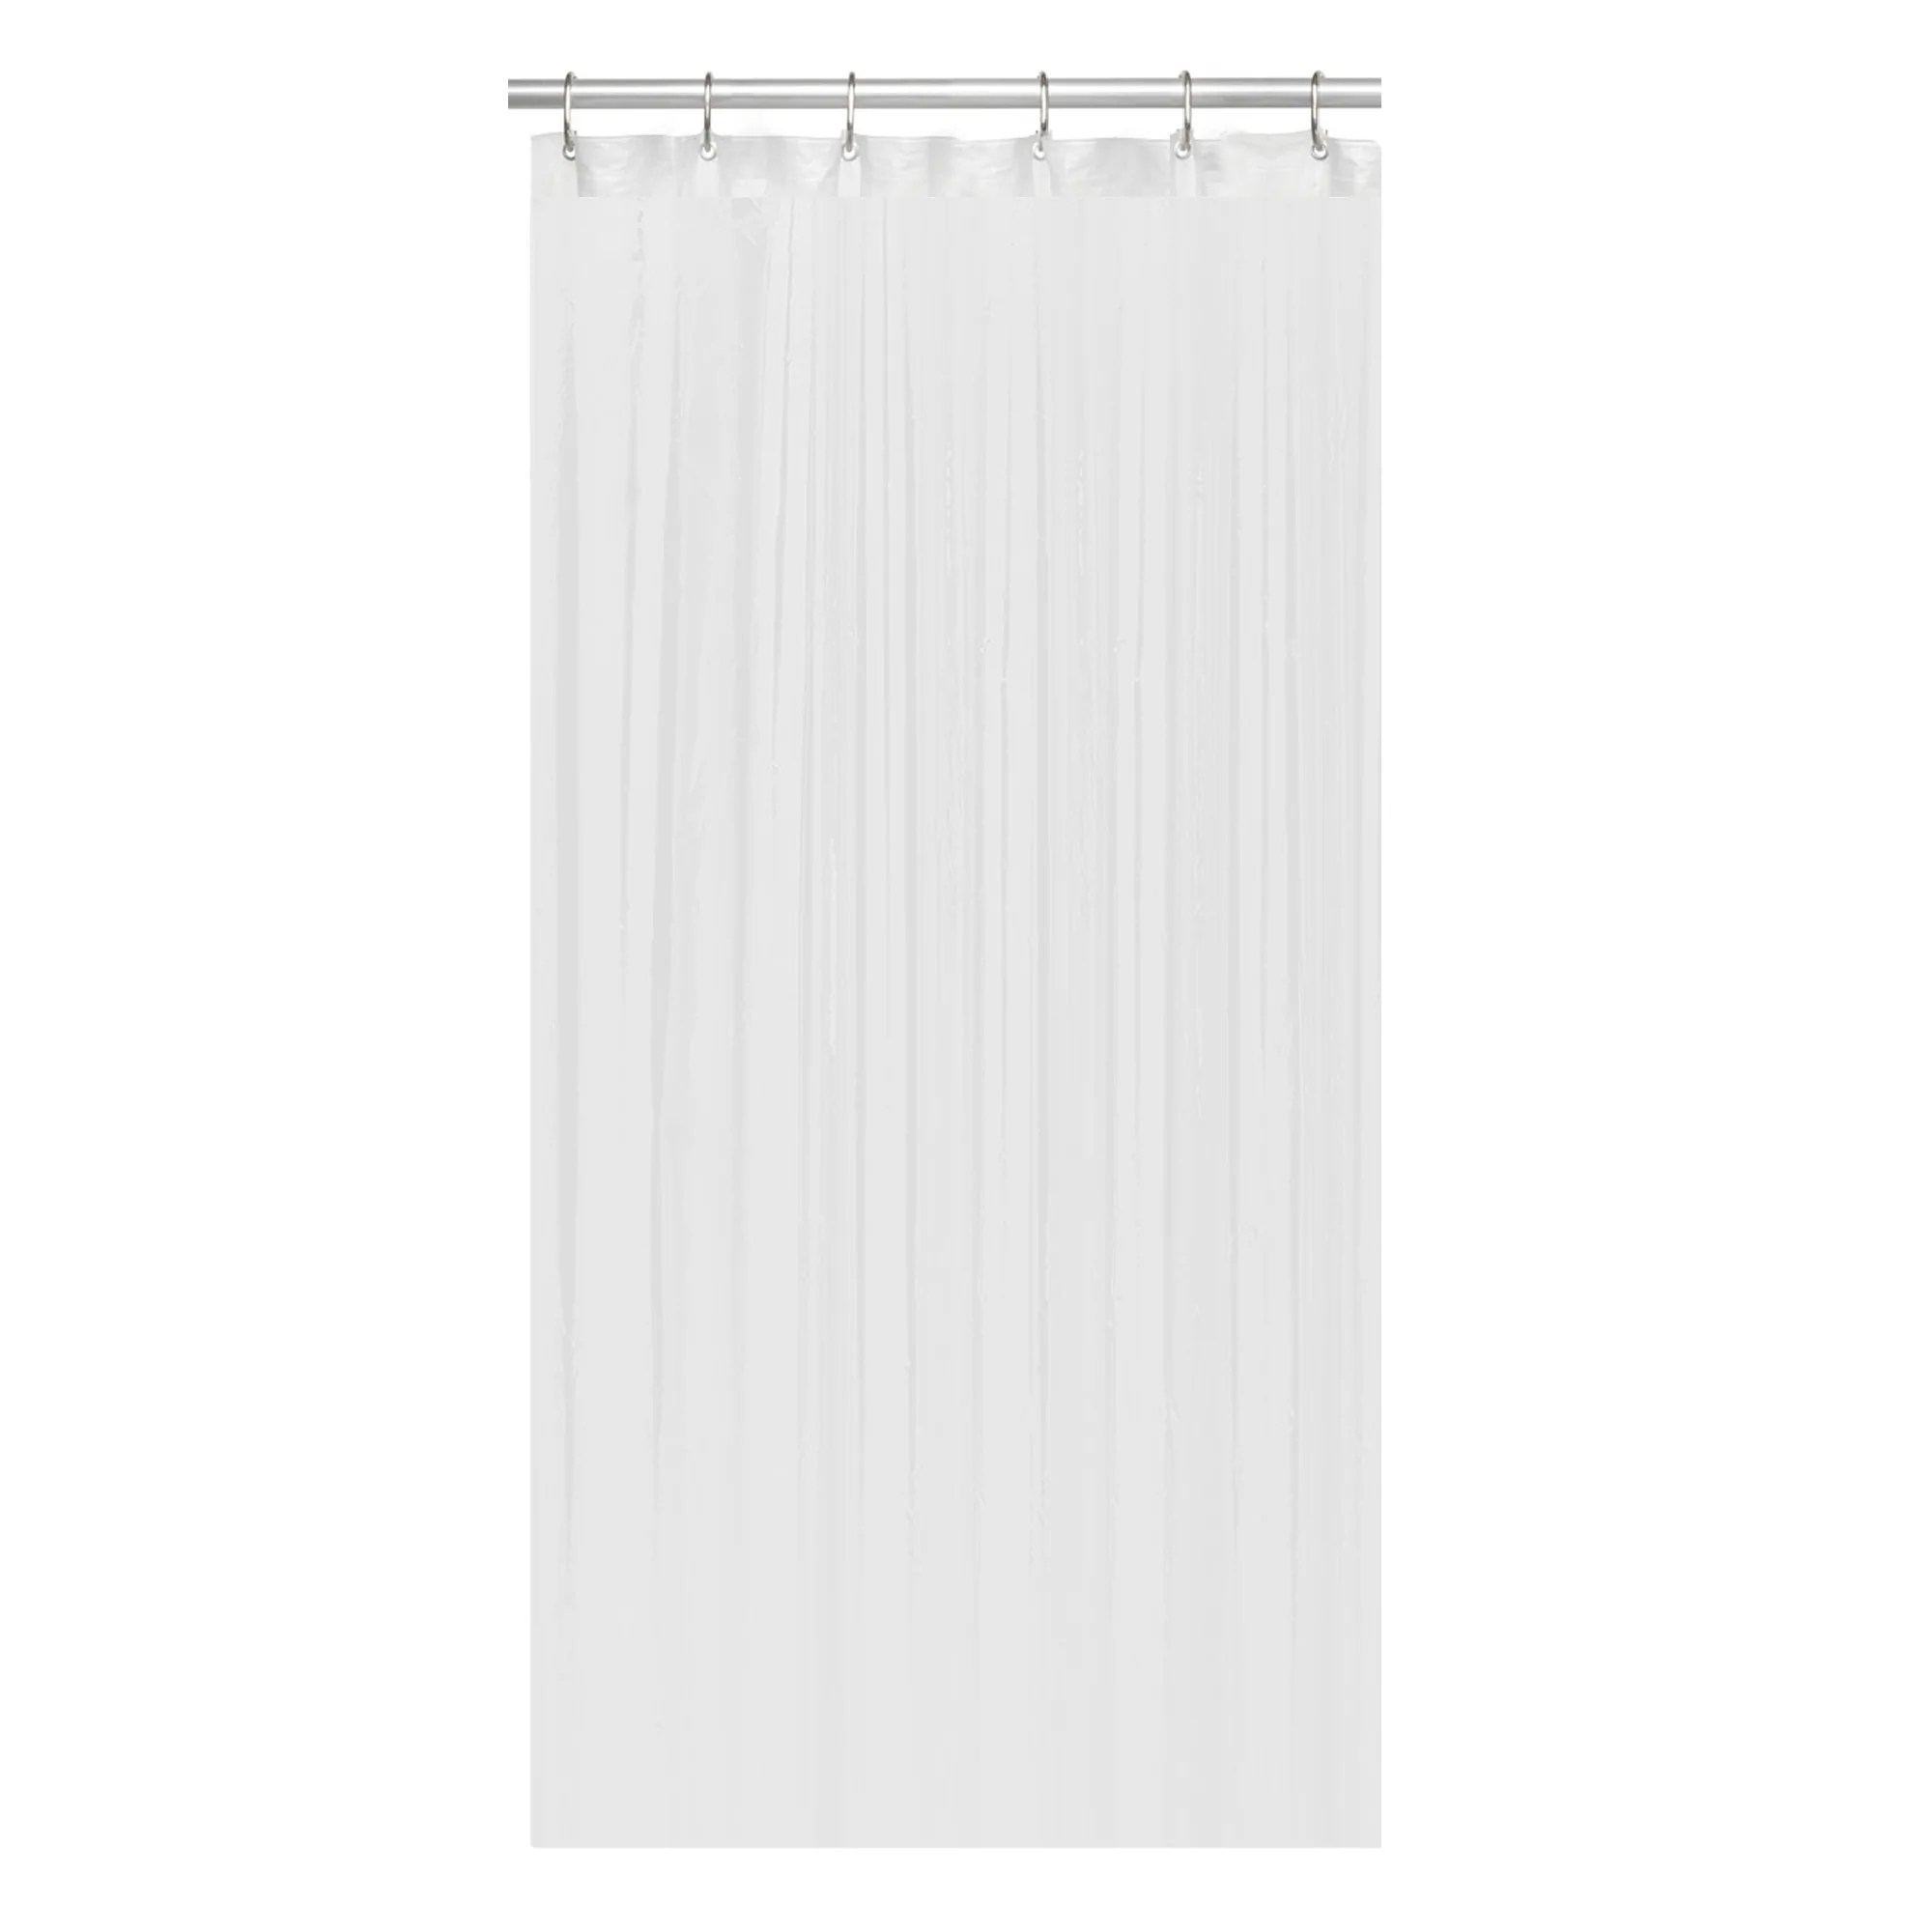 100gsm fabric shower curtain